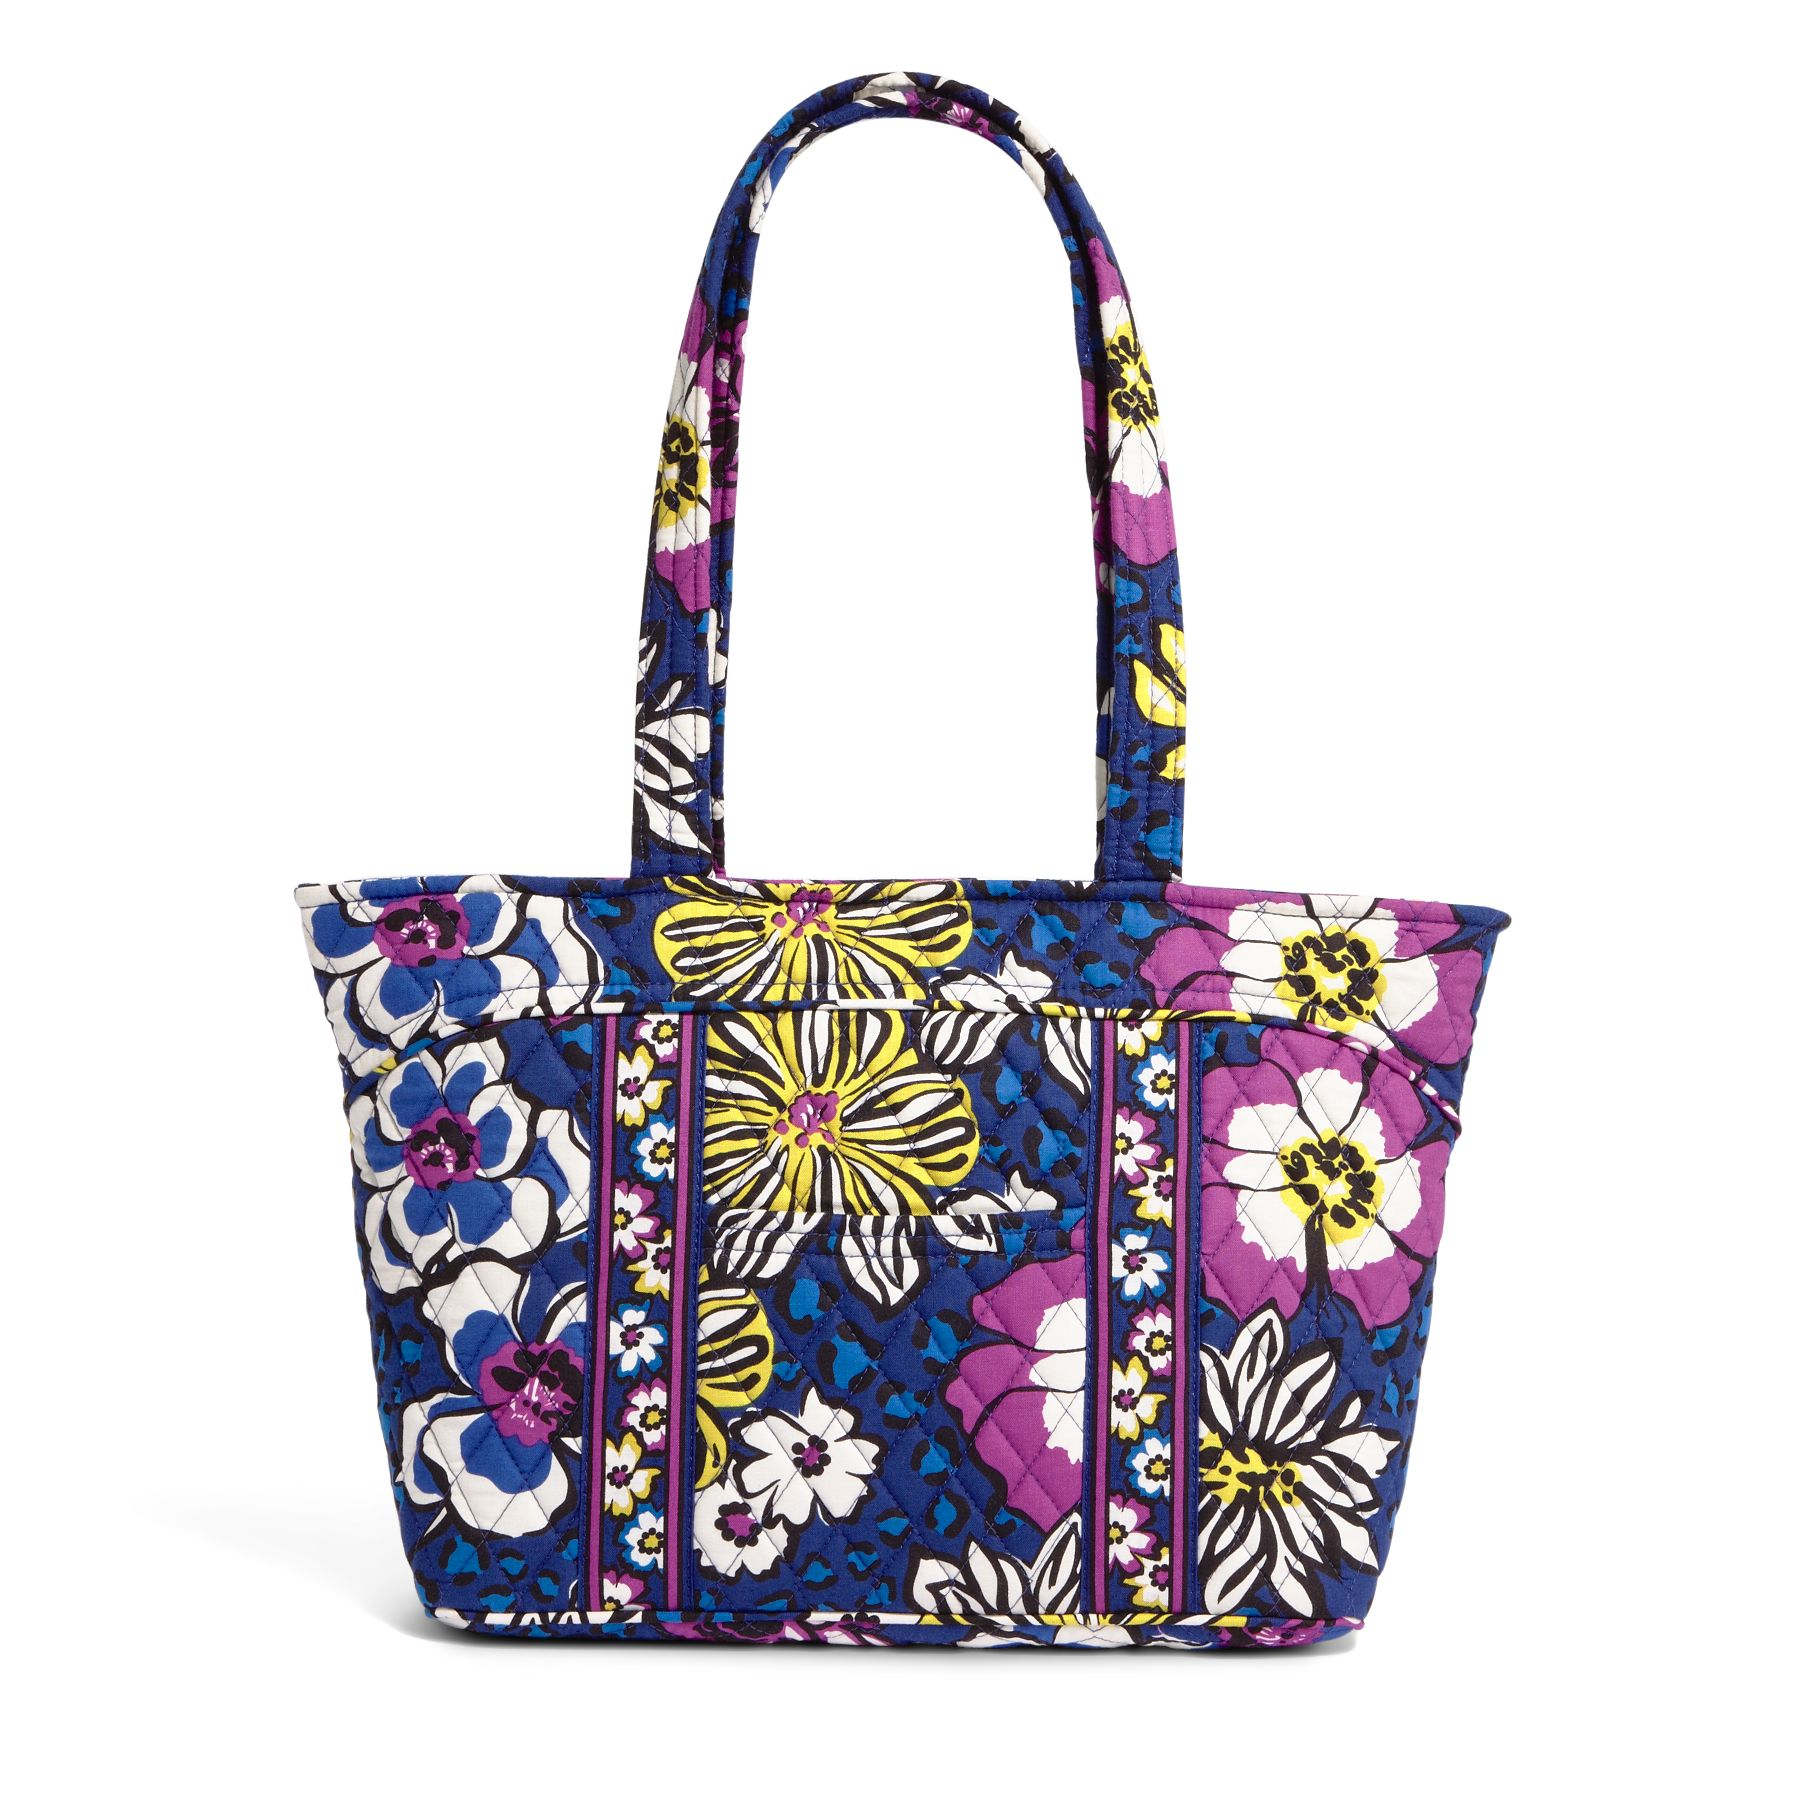 Vera Bradley Mandy Shoulder Bag in African Violet